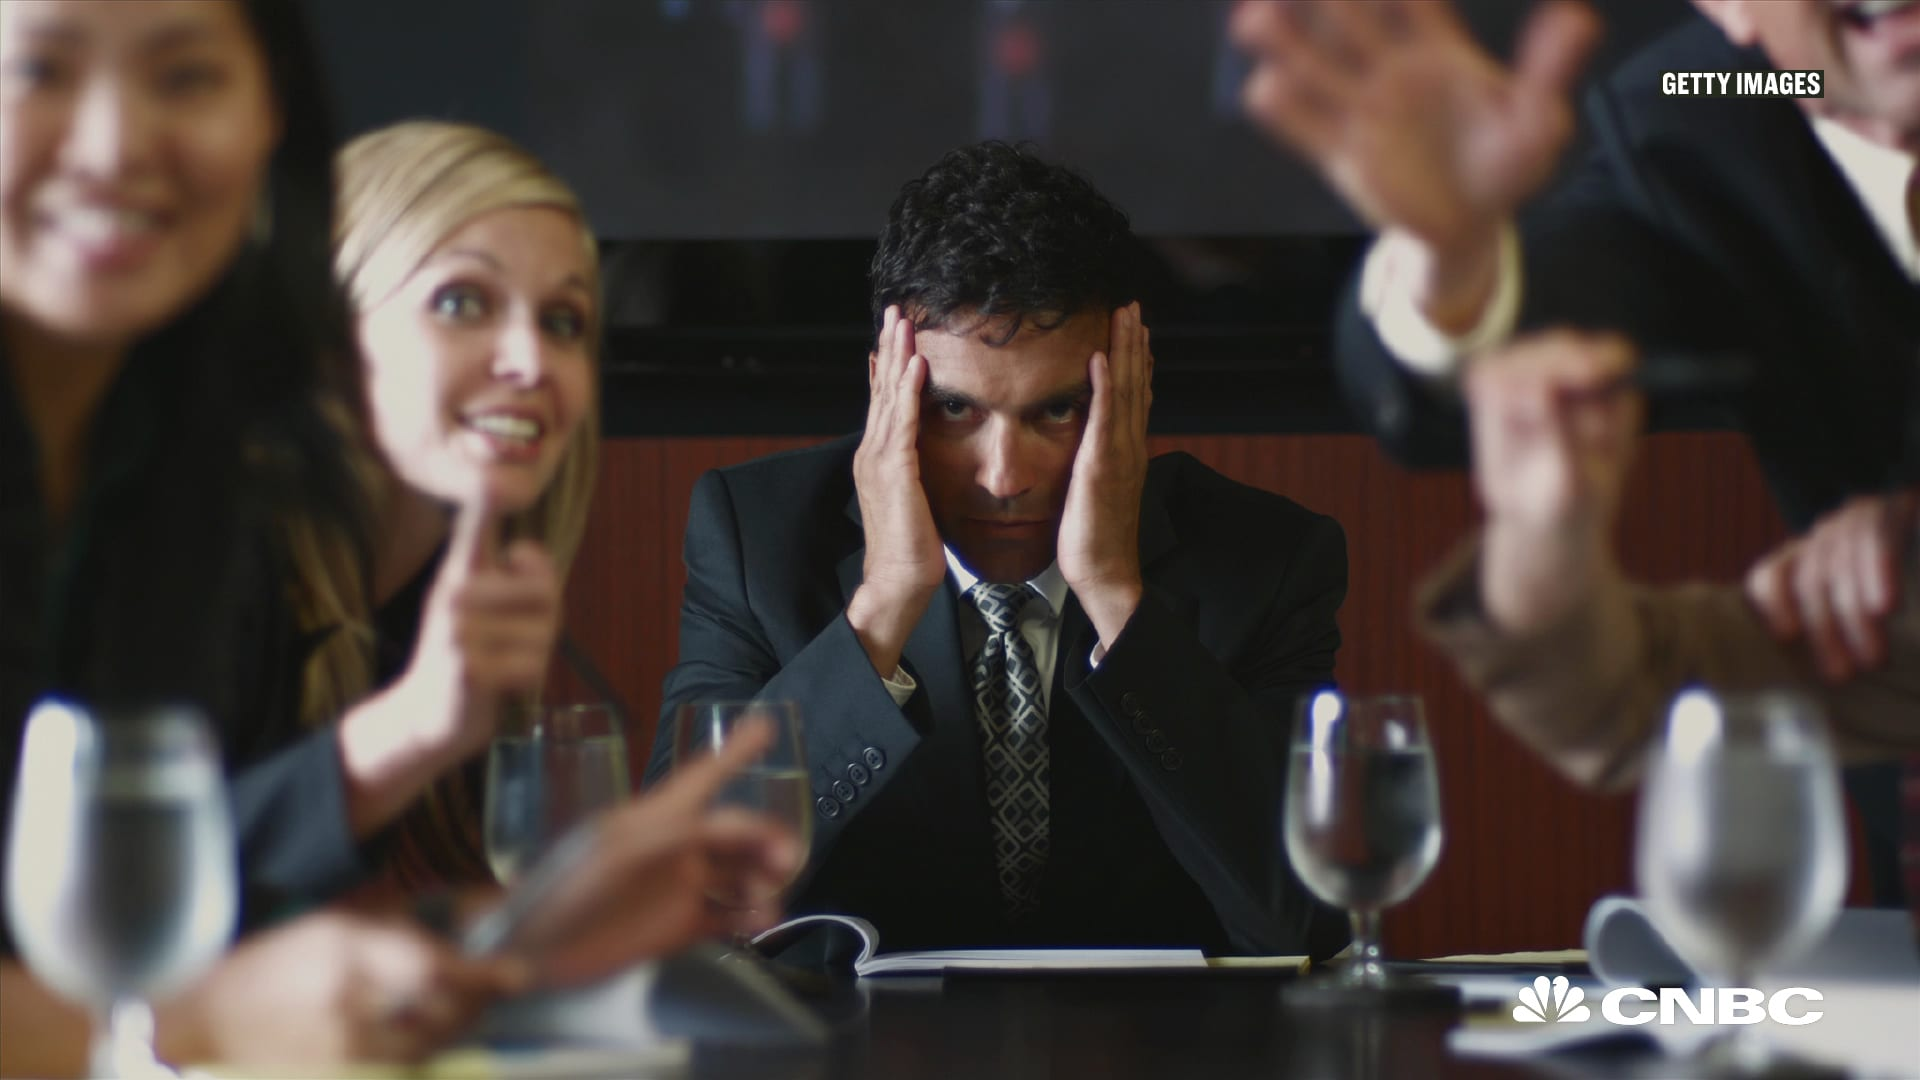 4 types of difficult co-workers and how to deal with them